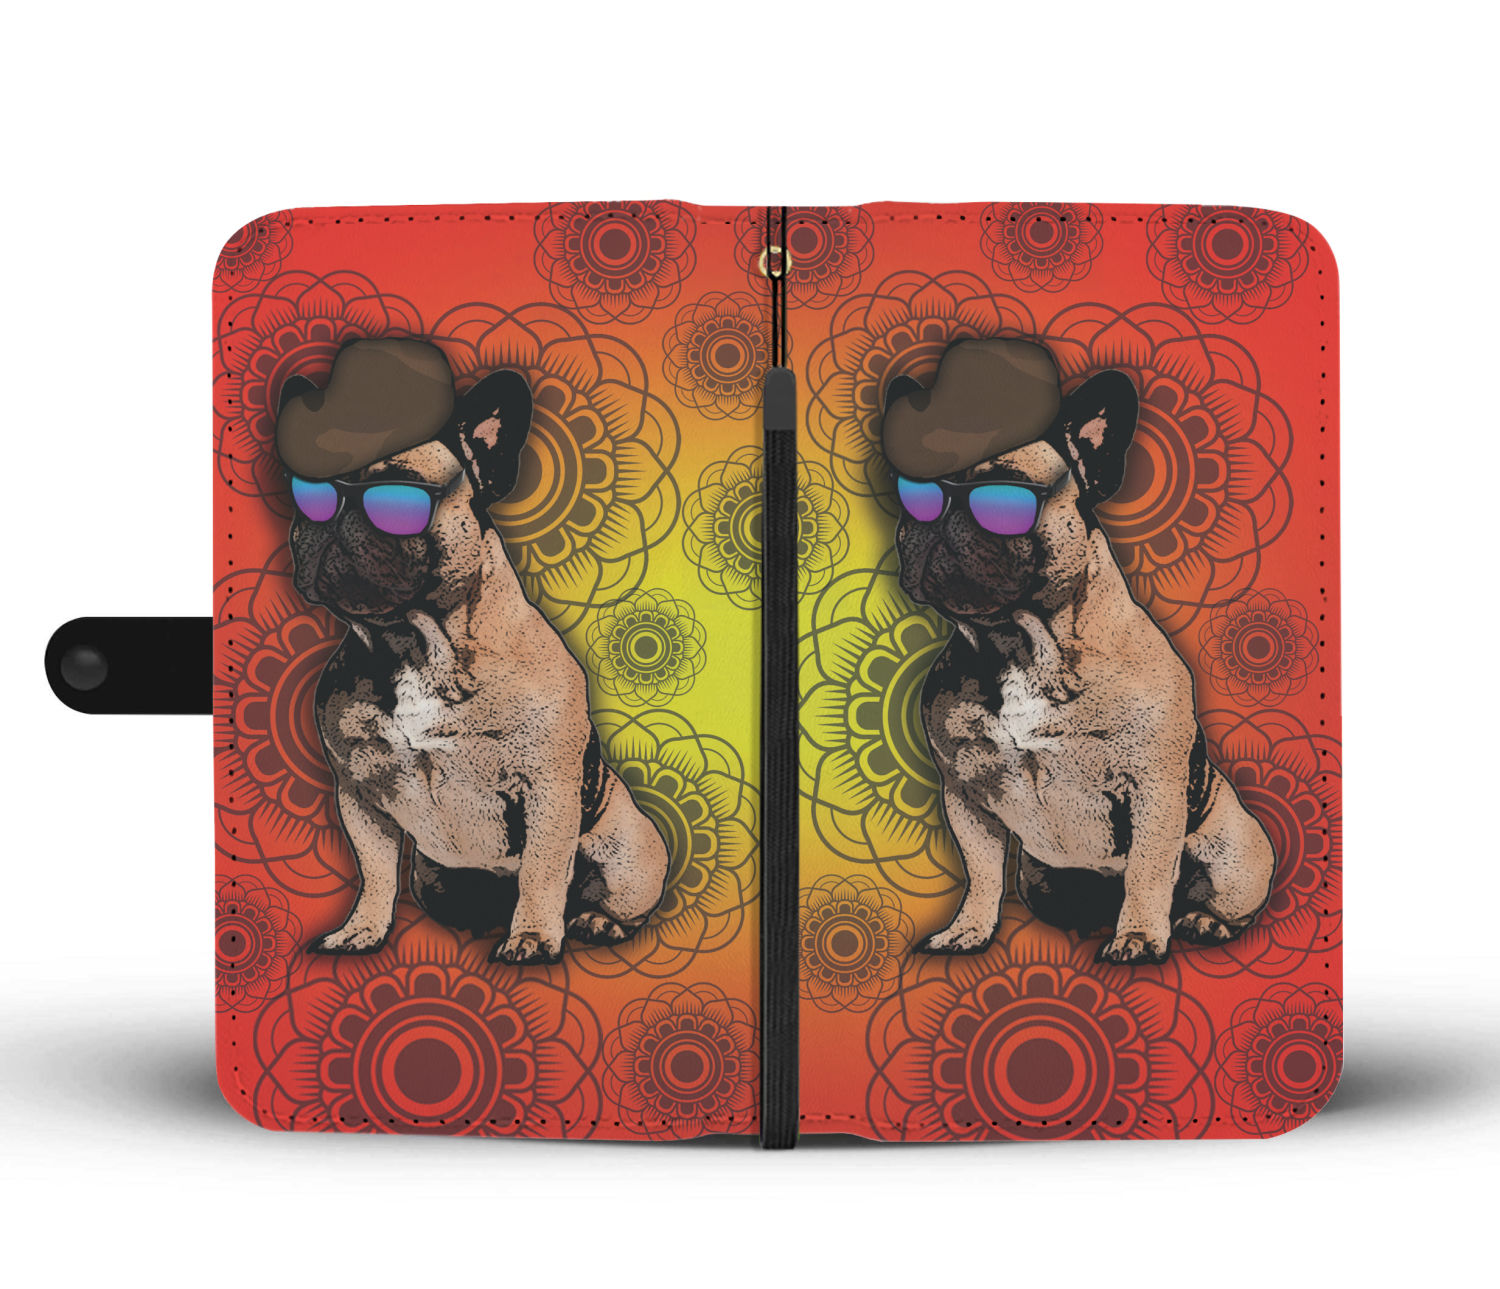 French Bulldog Phone Case Wallet - Orange